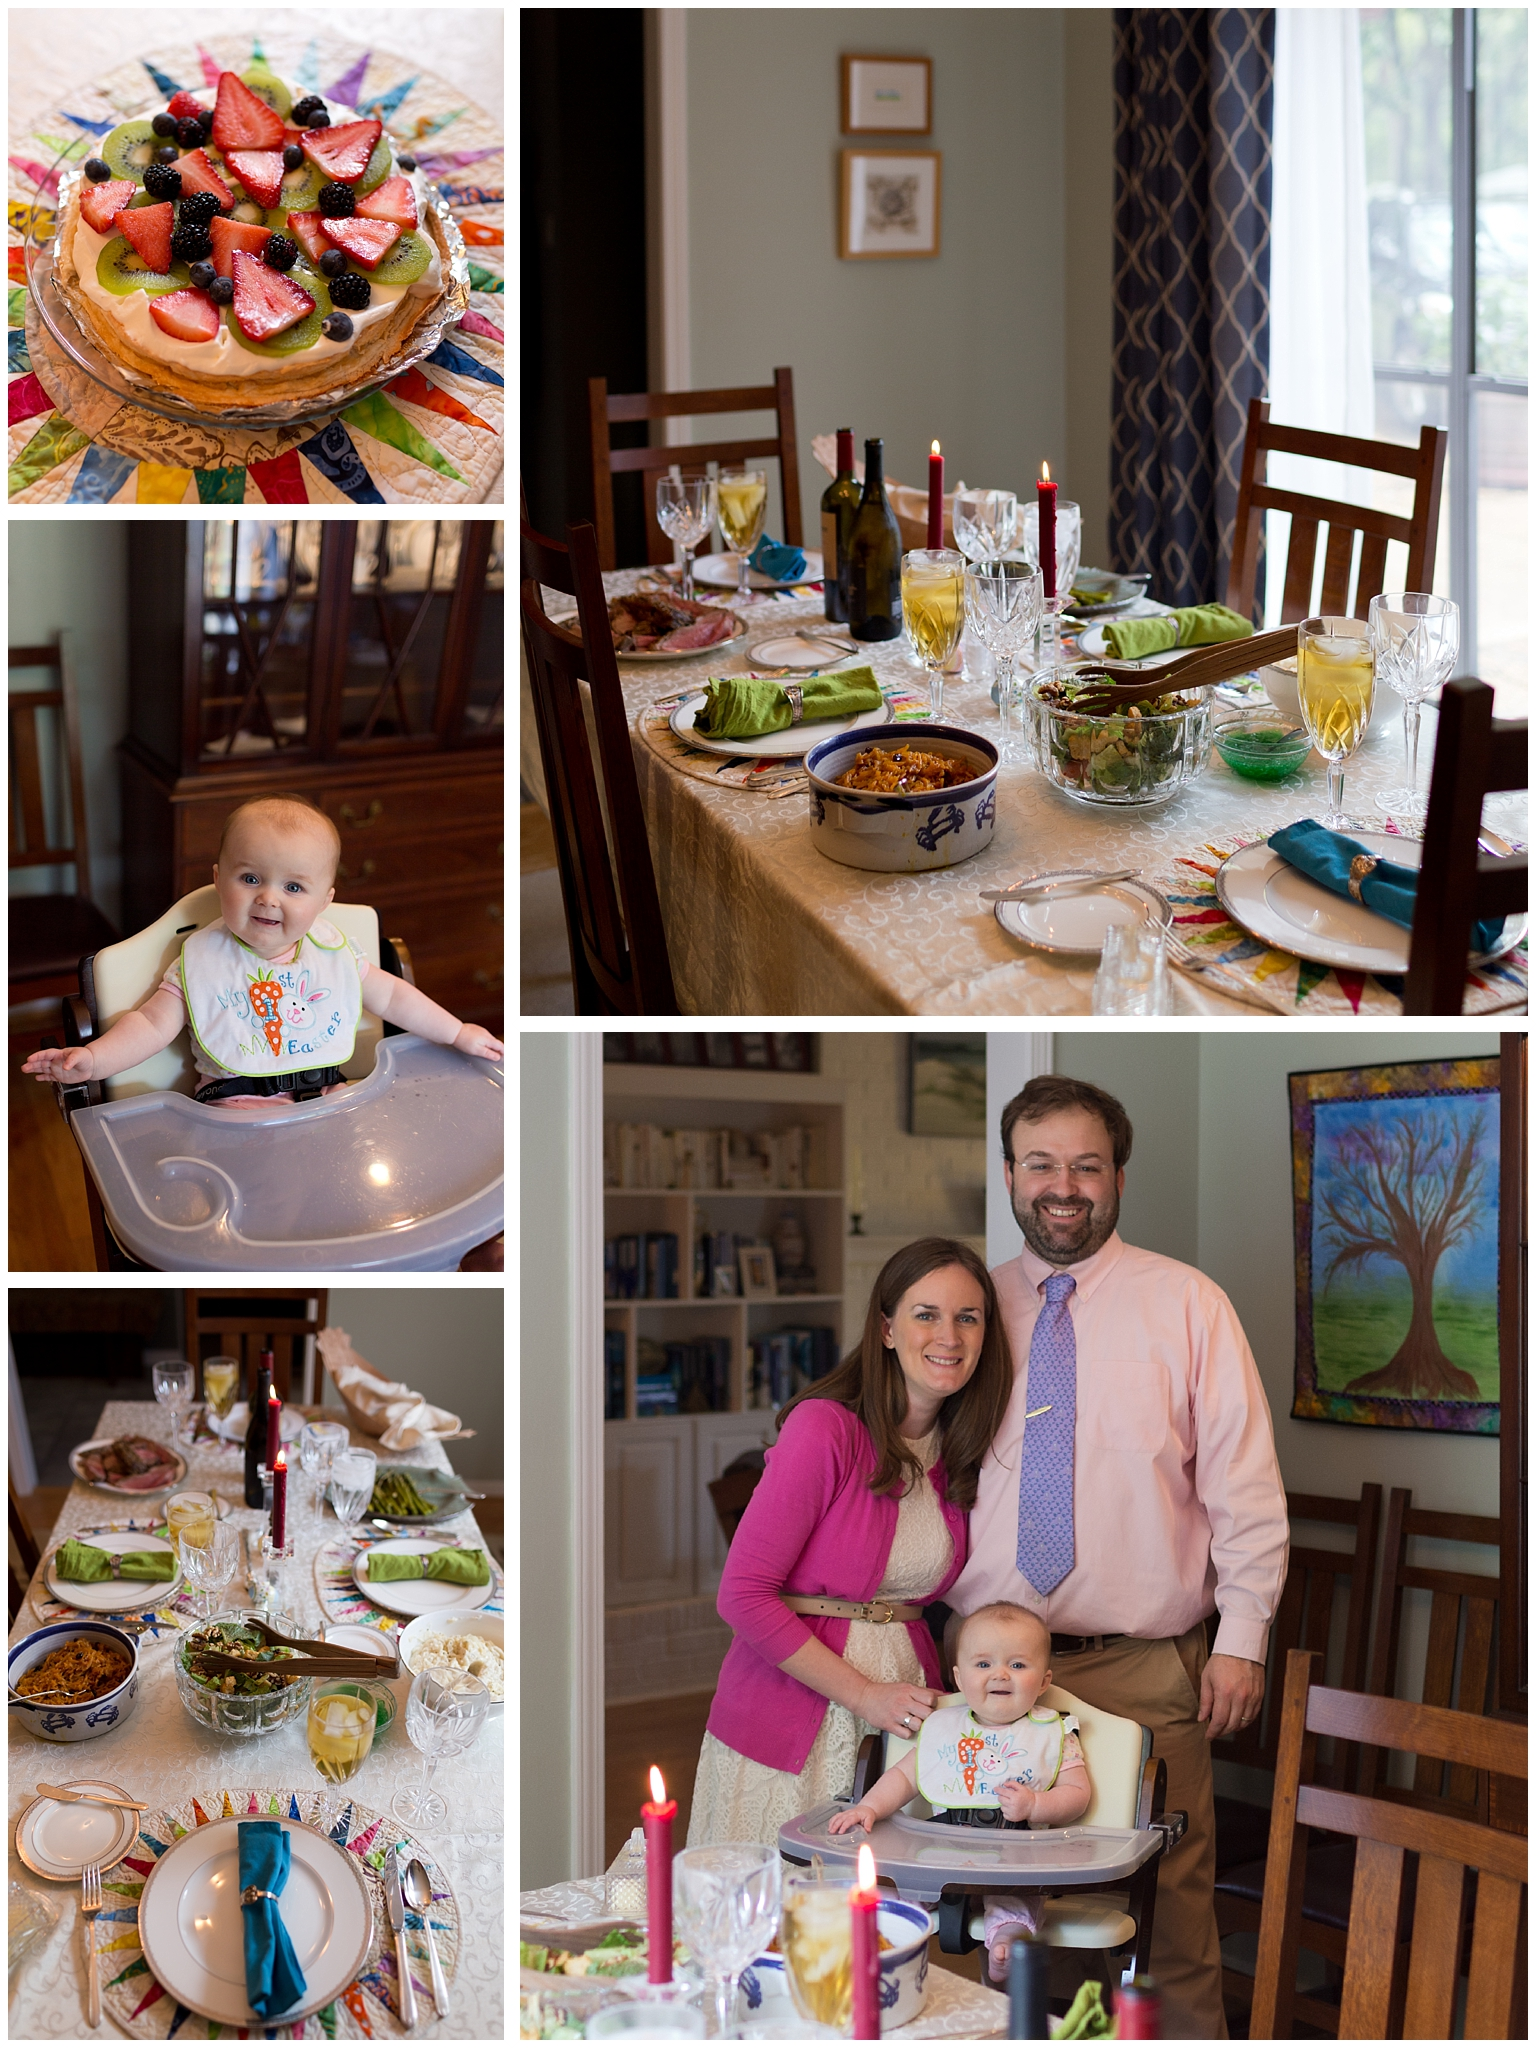 formal Easter dinner and family photo for baby's first Easter